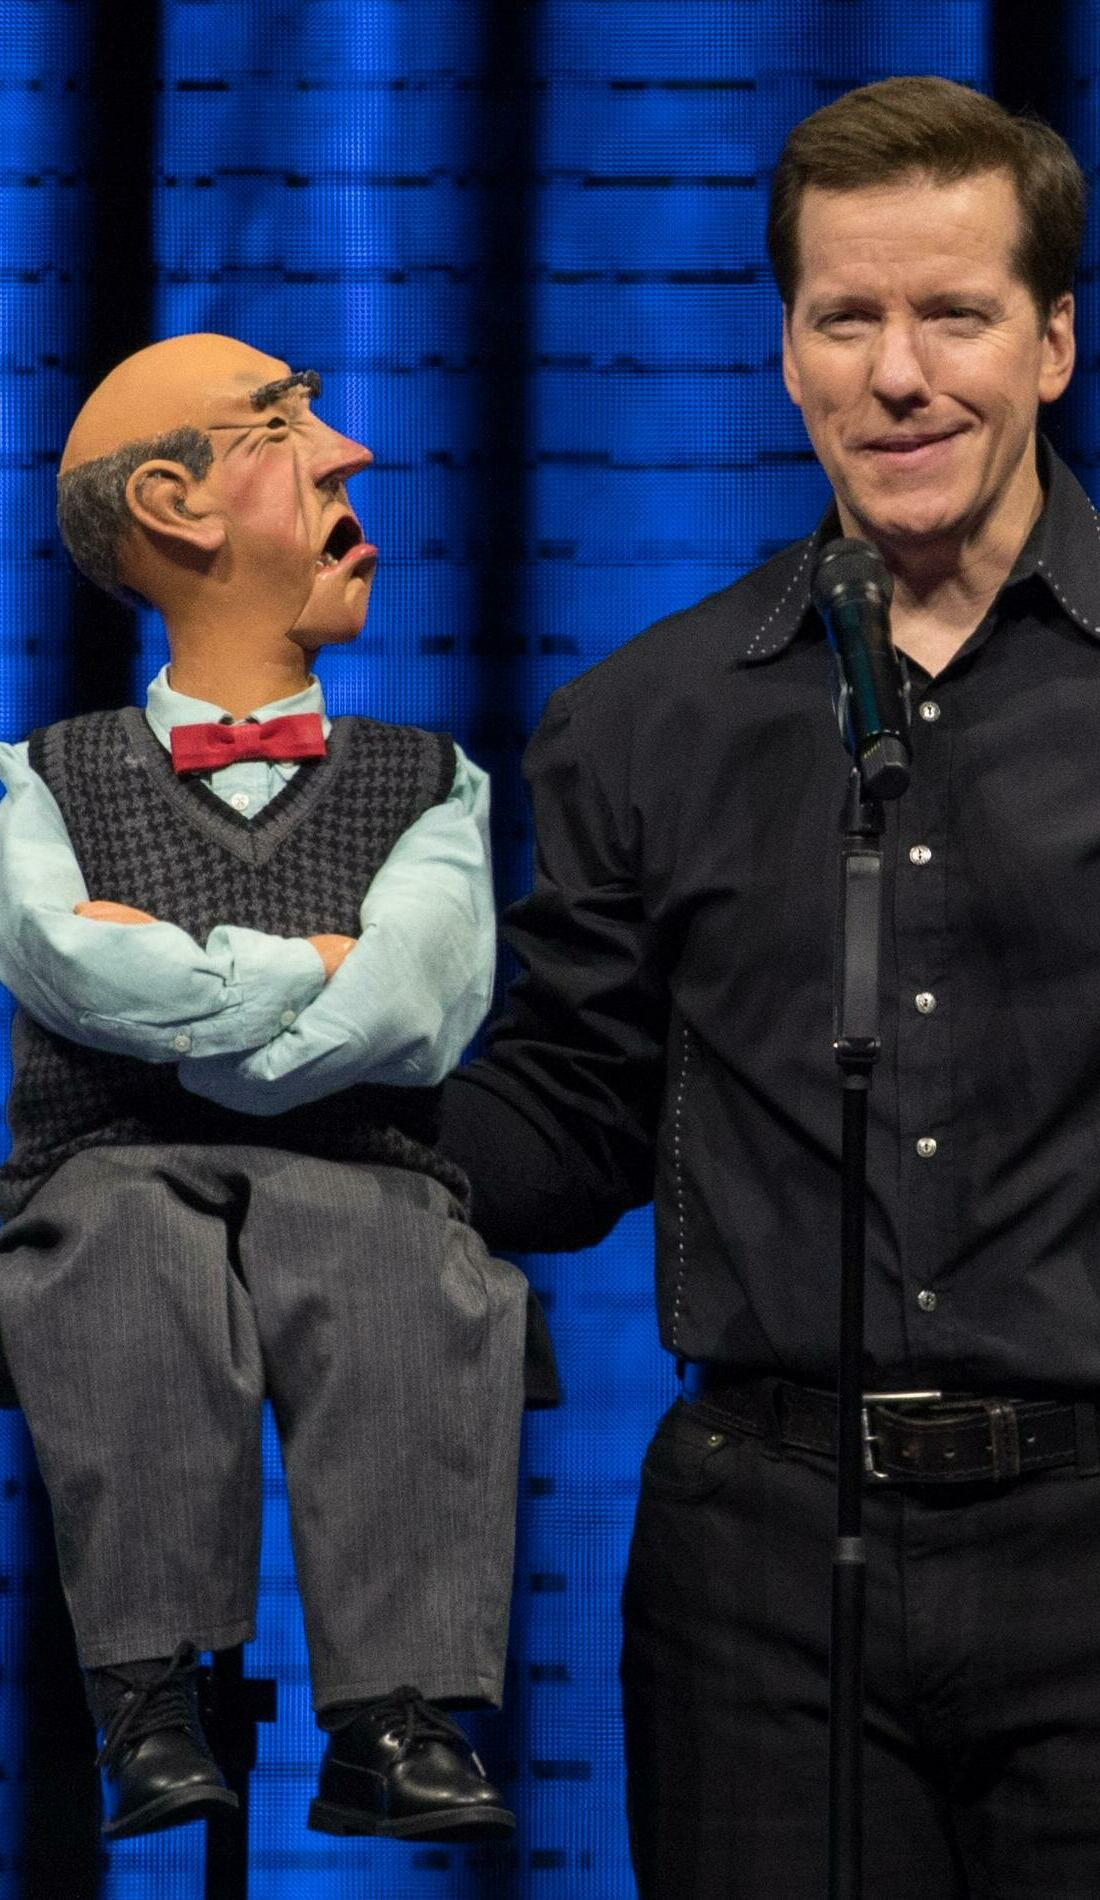 A Jeff Dunham live event